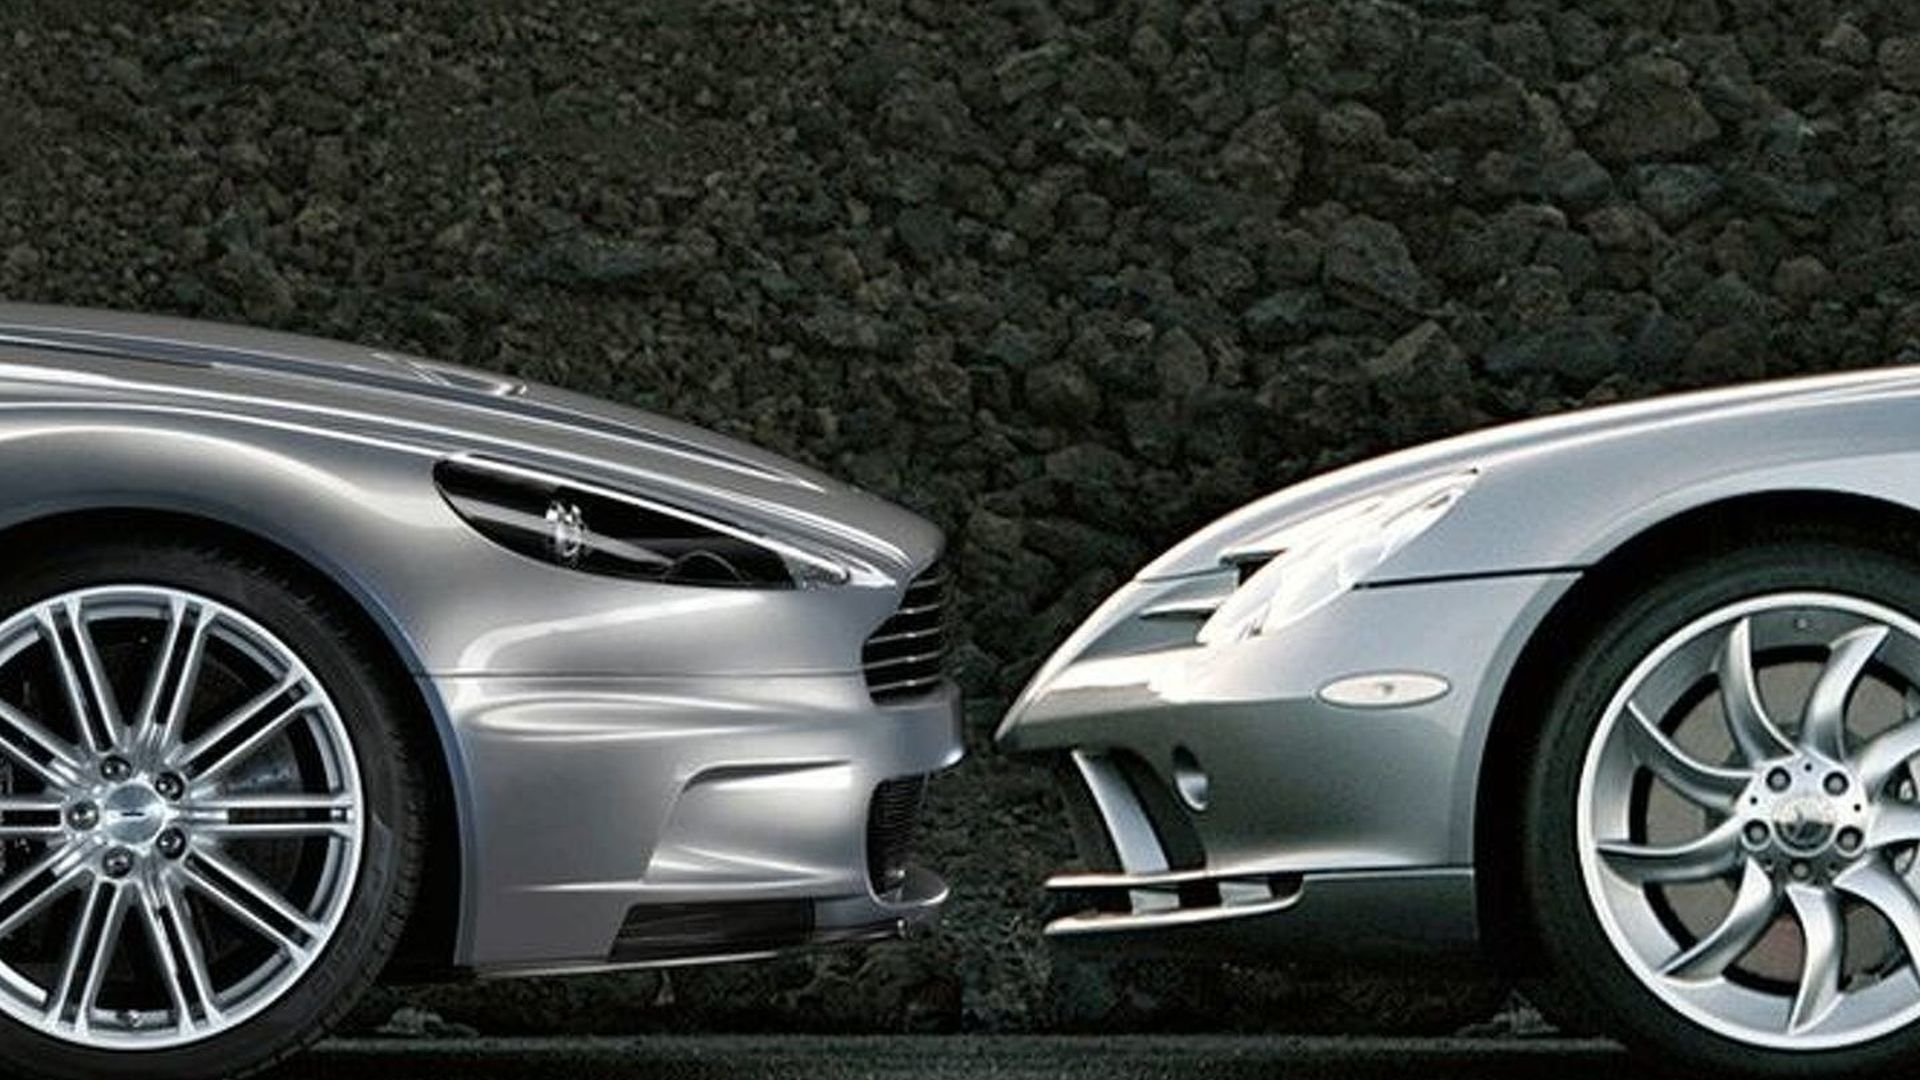 RUMOUR: Aston Martin and Mercedes Planning Cooperation?